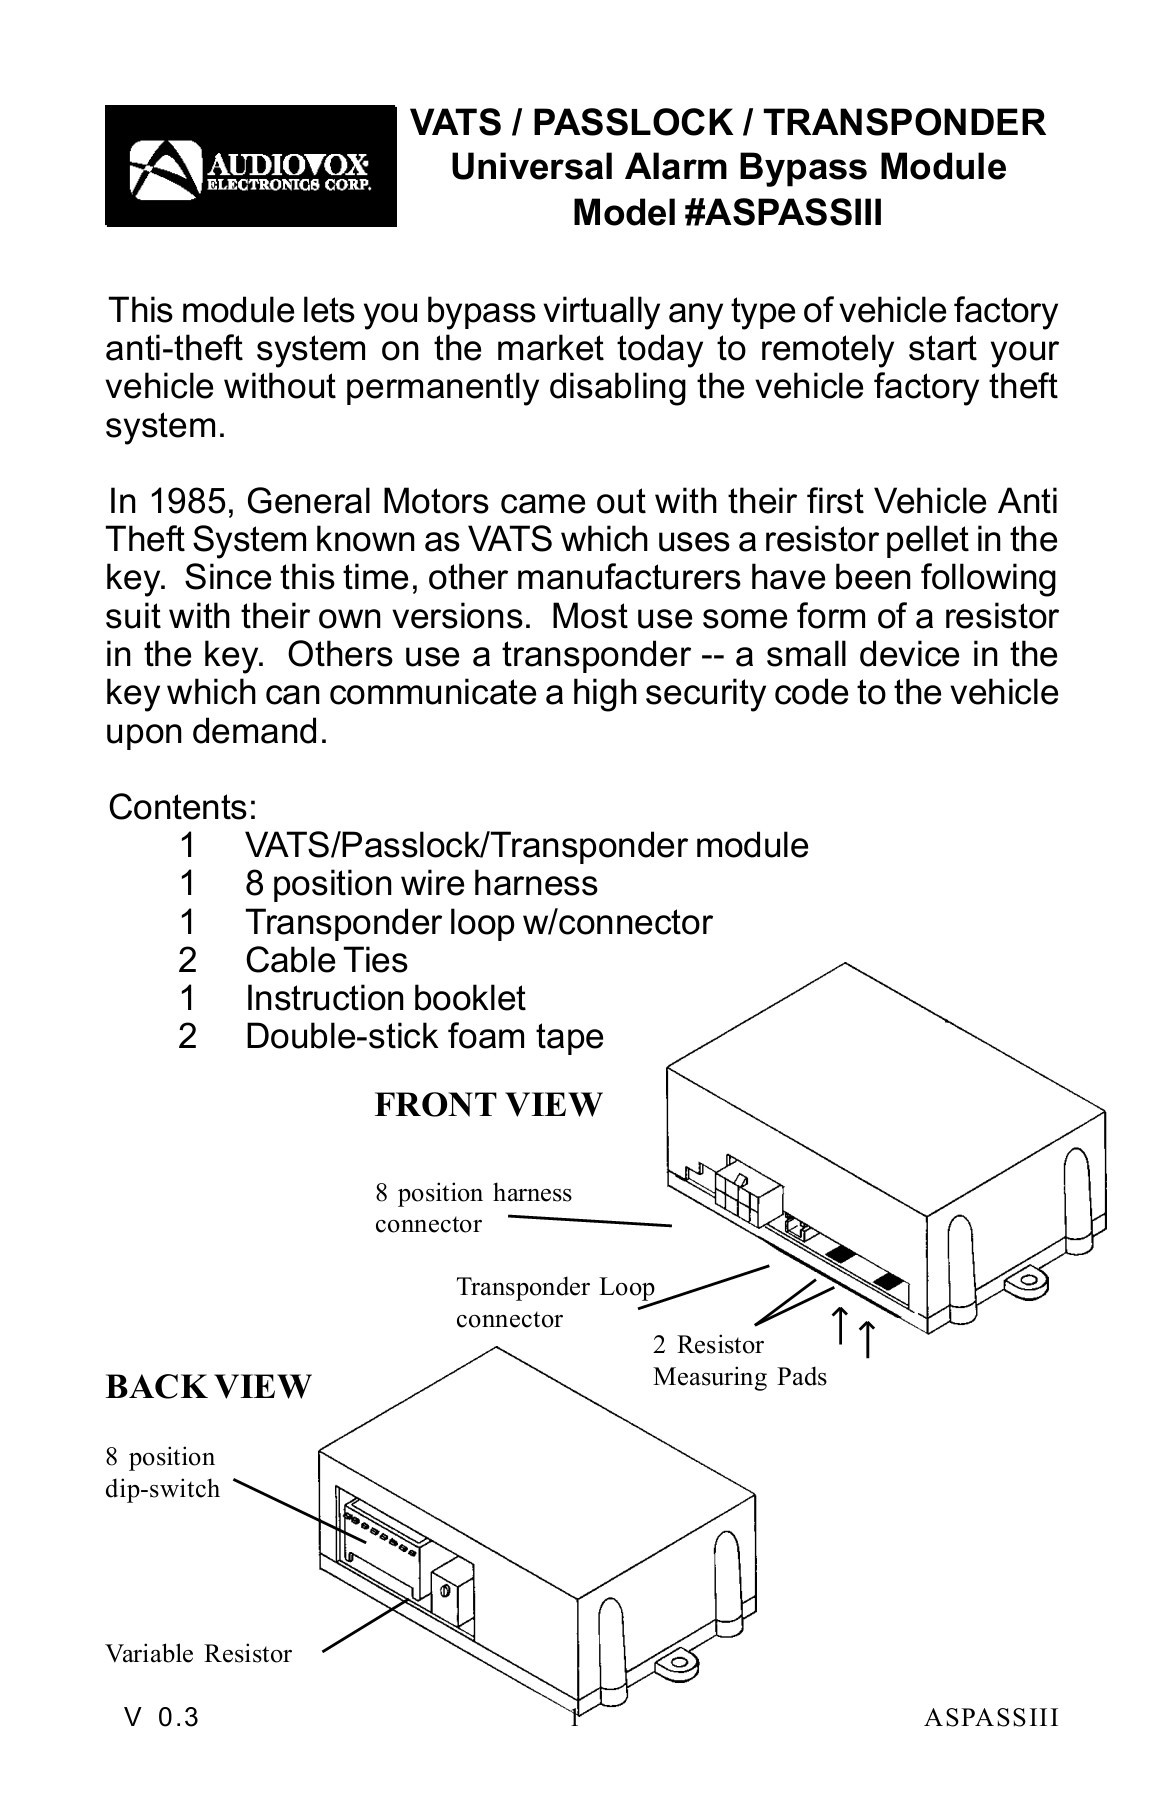 hight resolution of vats passlock transponder universal alarm bypass module pages 1 12 text version